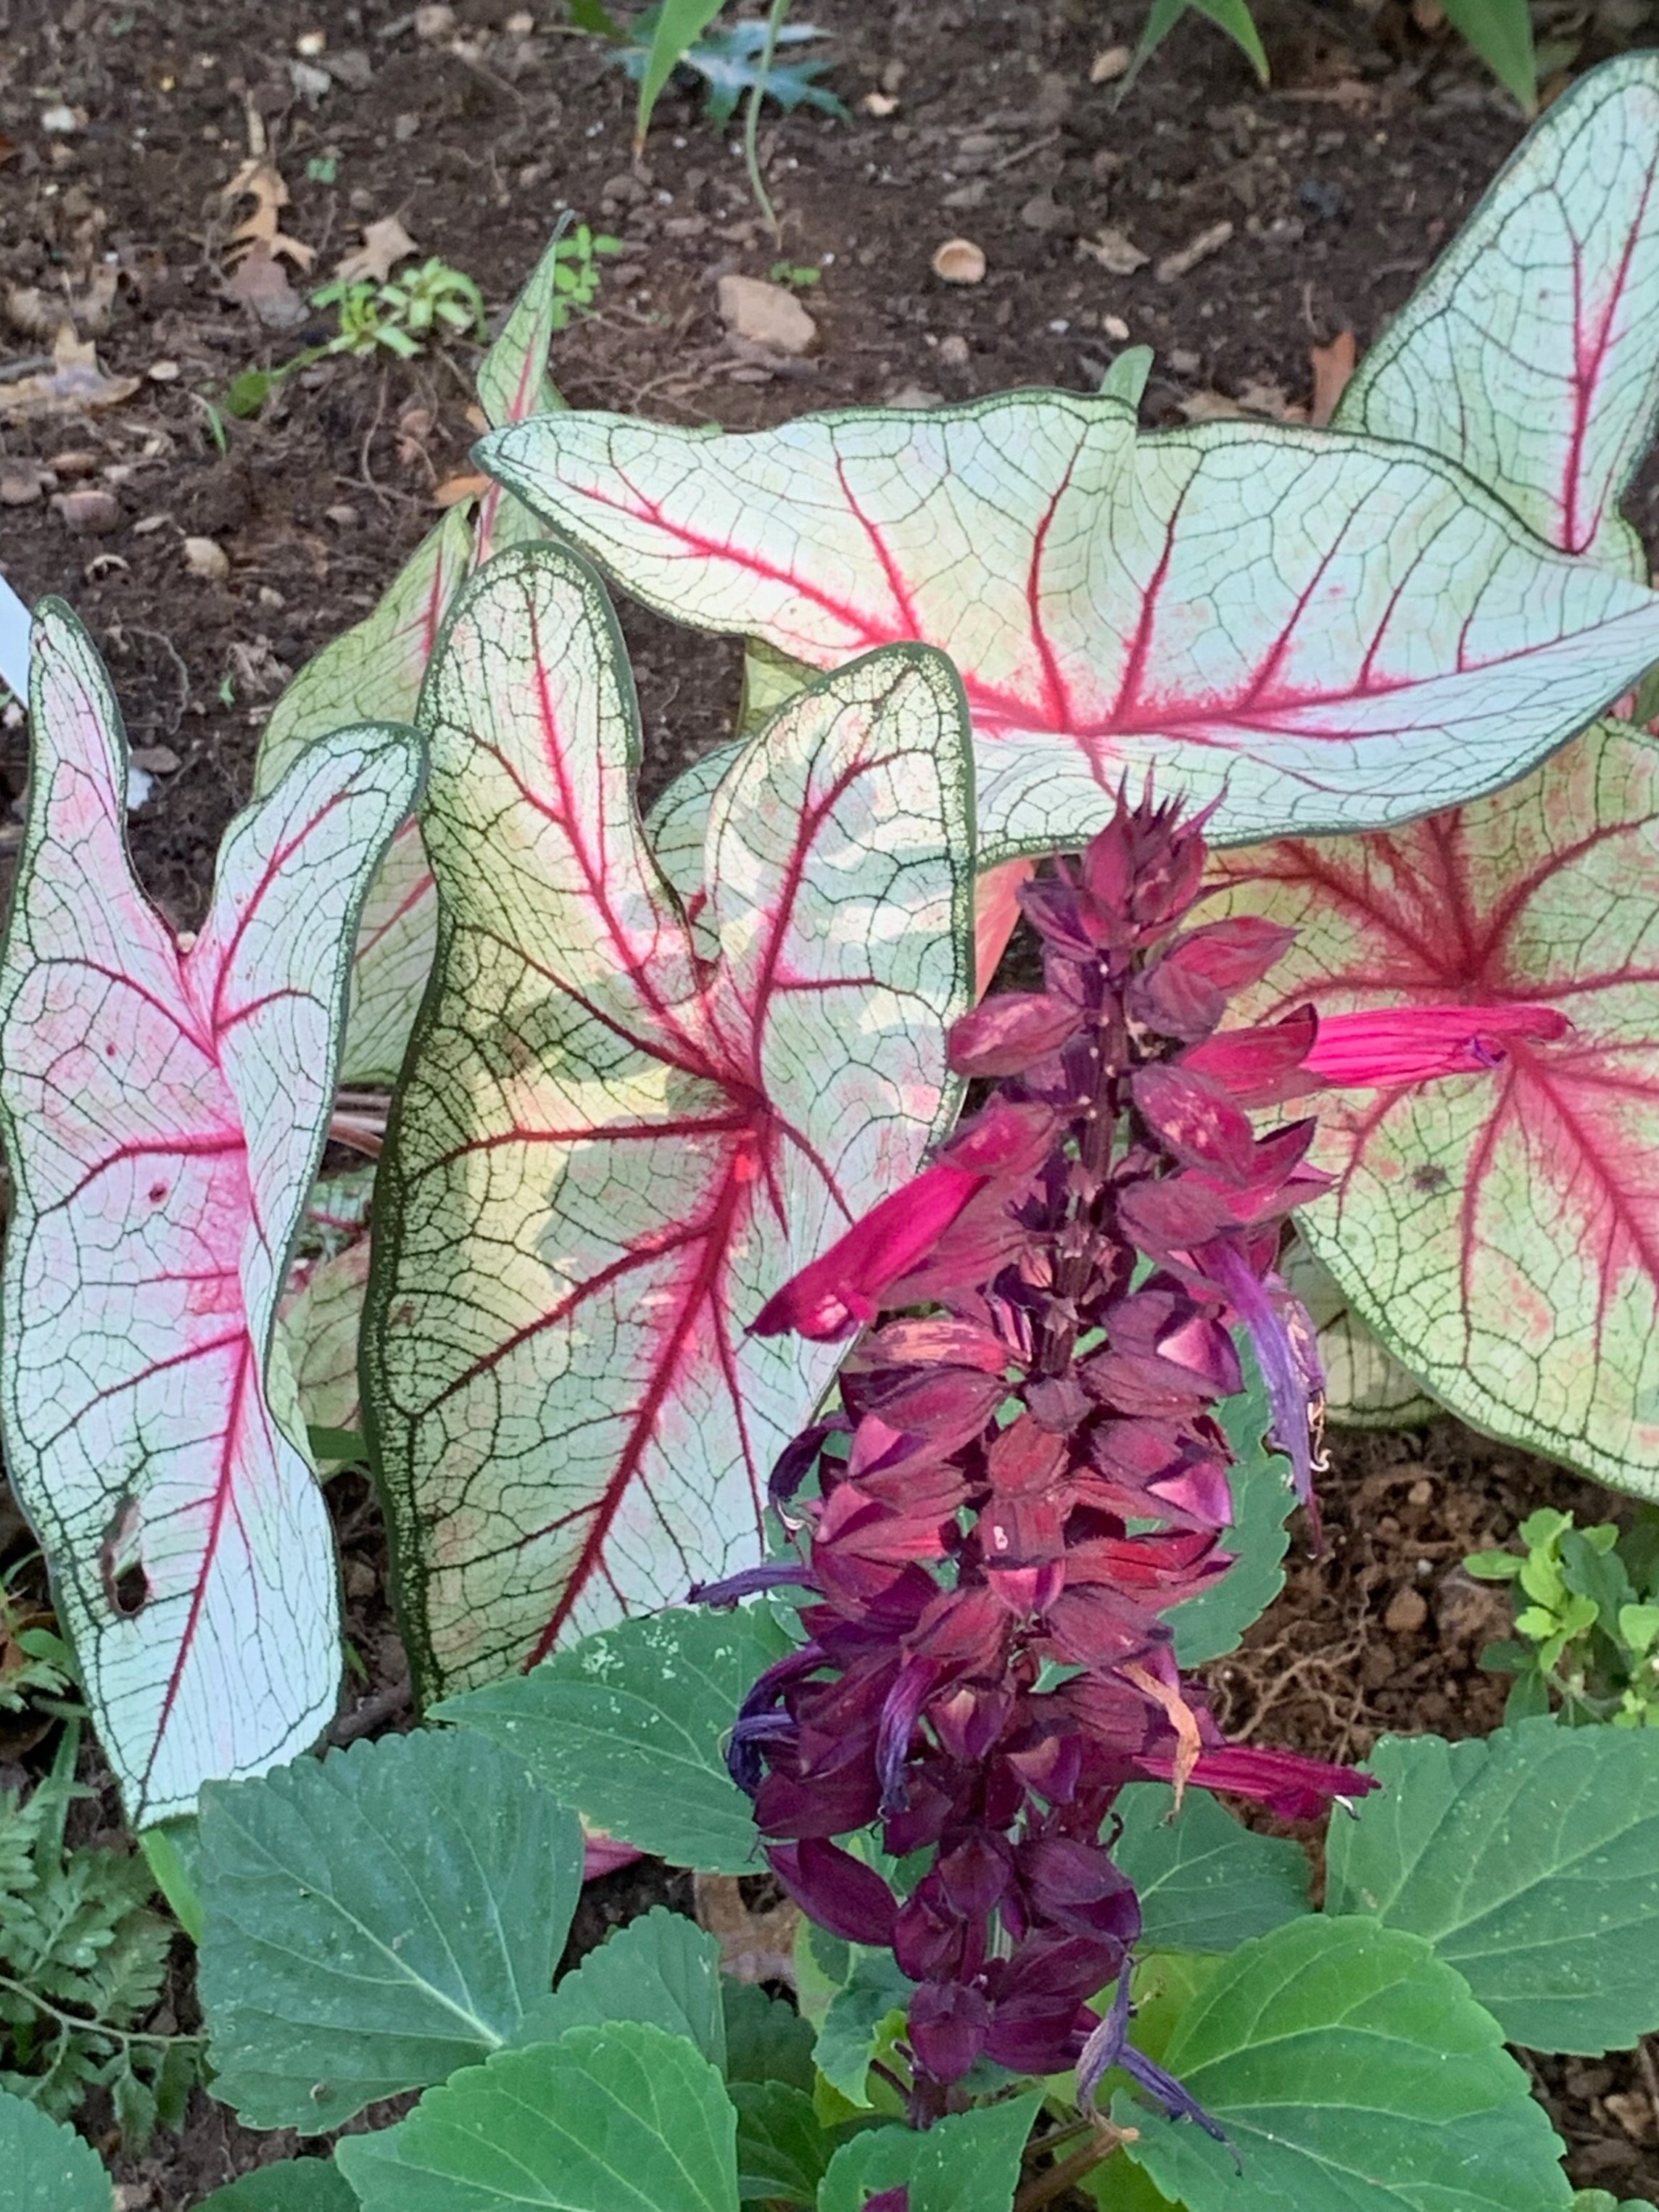 Caladium and Salvia